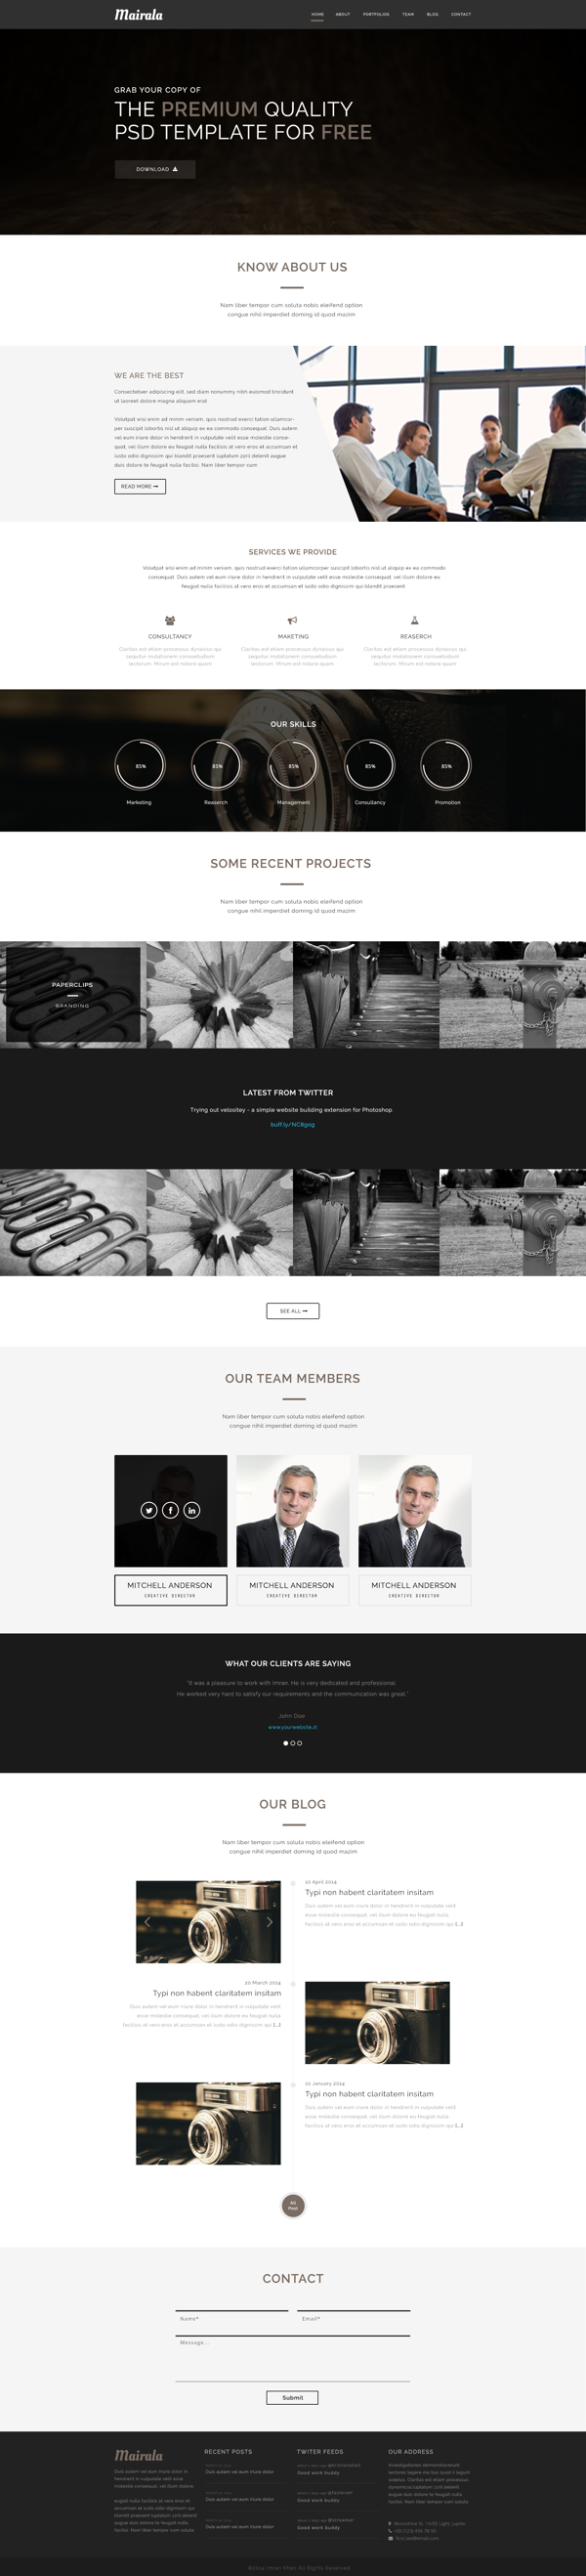 Psd Templates 20 One Page Free Web Templates Freebies Psd Template Free Corporate Web Design Psd Templates